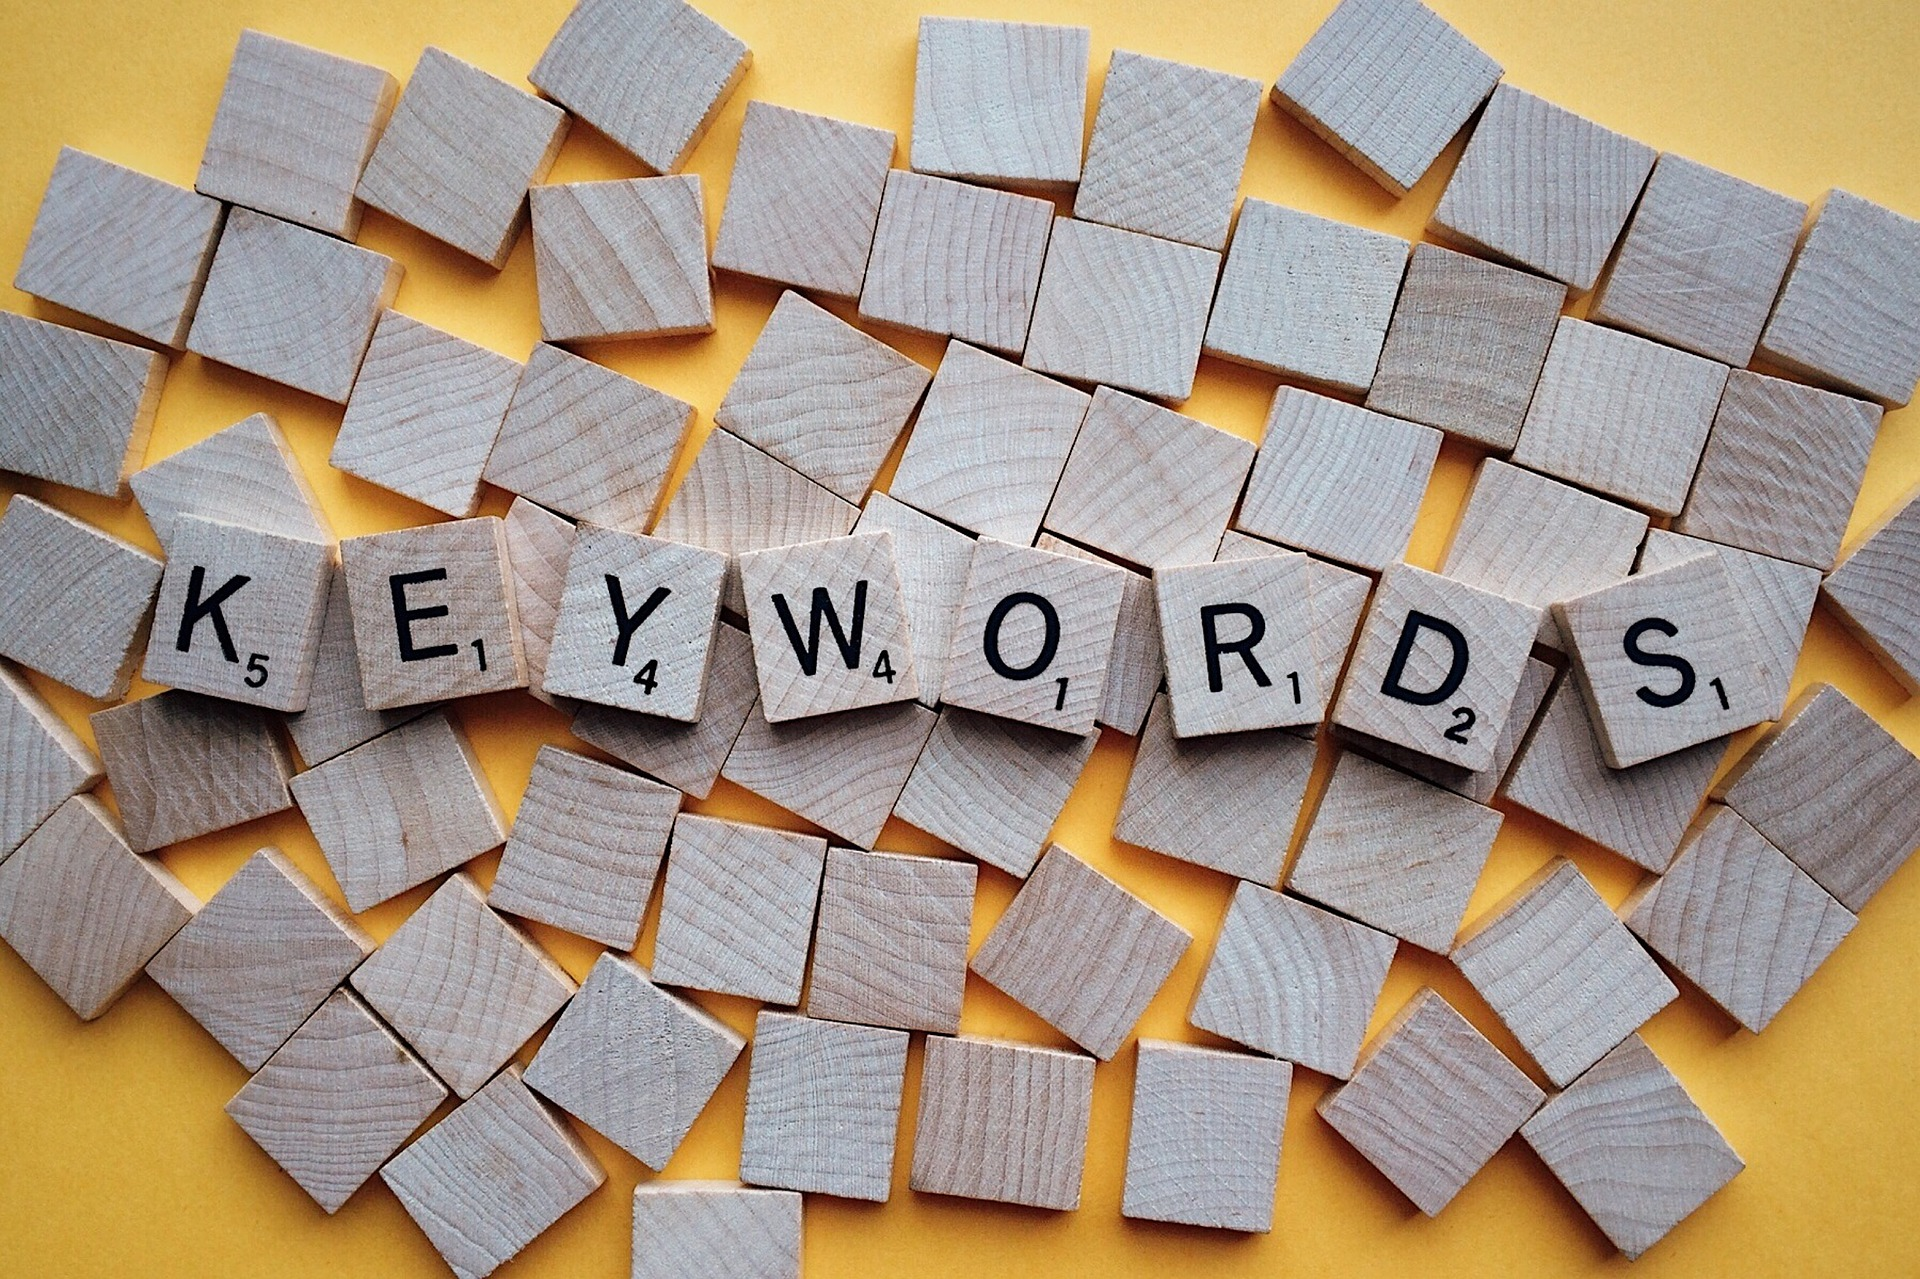 Keyword Research: How To Find Good Keywords For Your Site